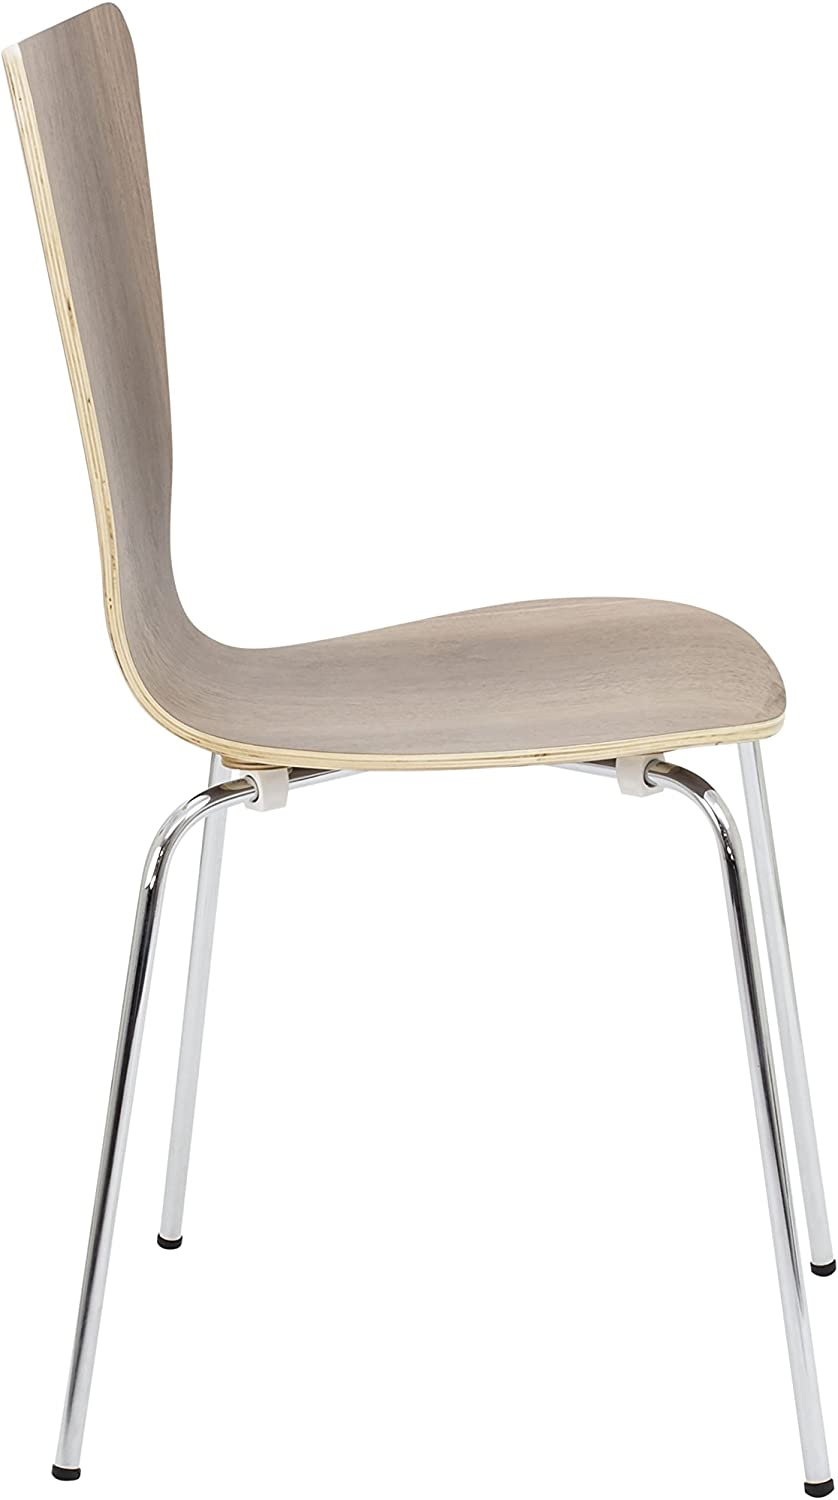 Office Hippo Caf/é Bistro Stacking Chair-Beech 47x54.5x87 cm